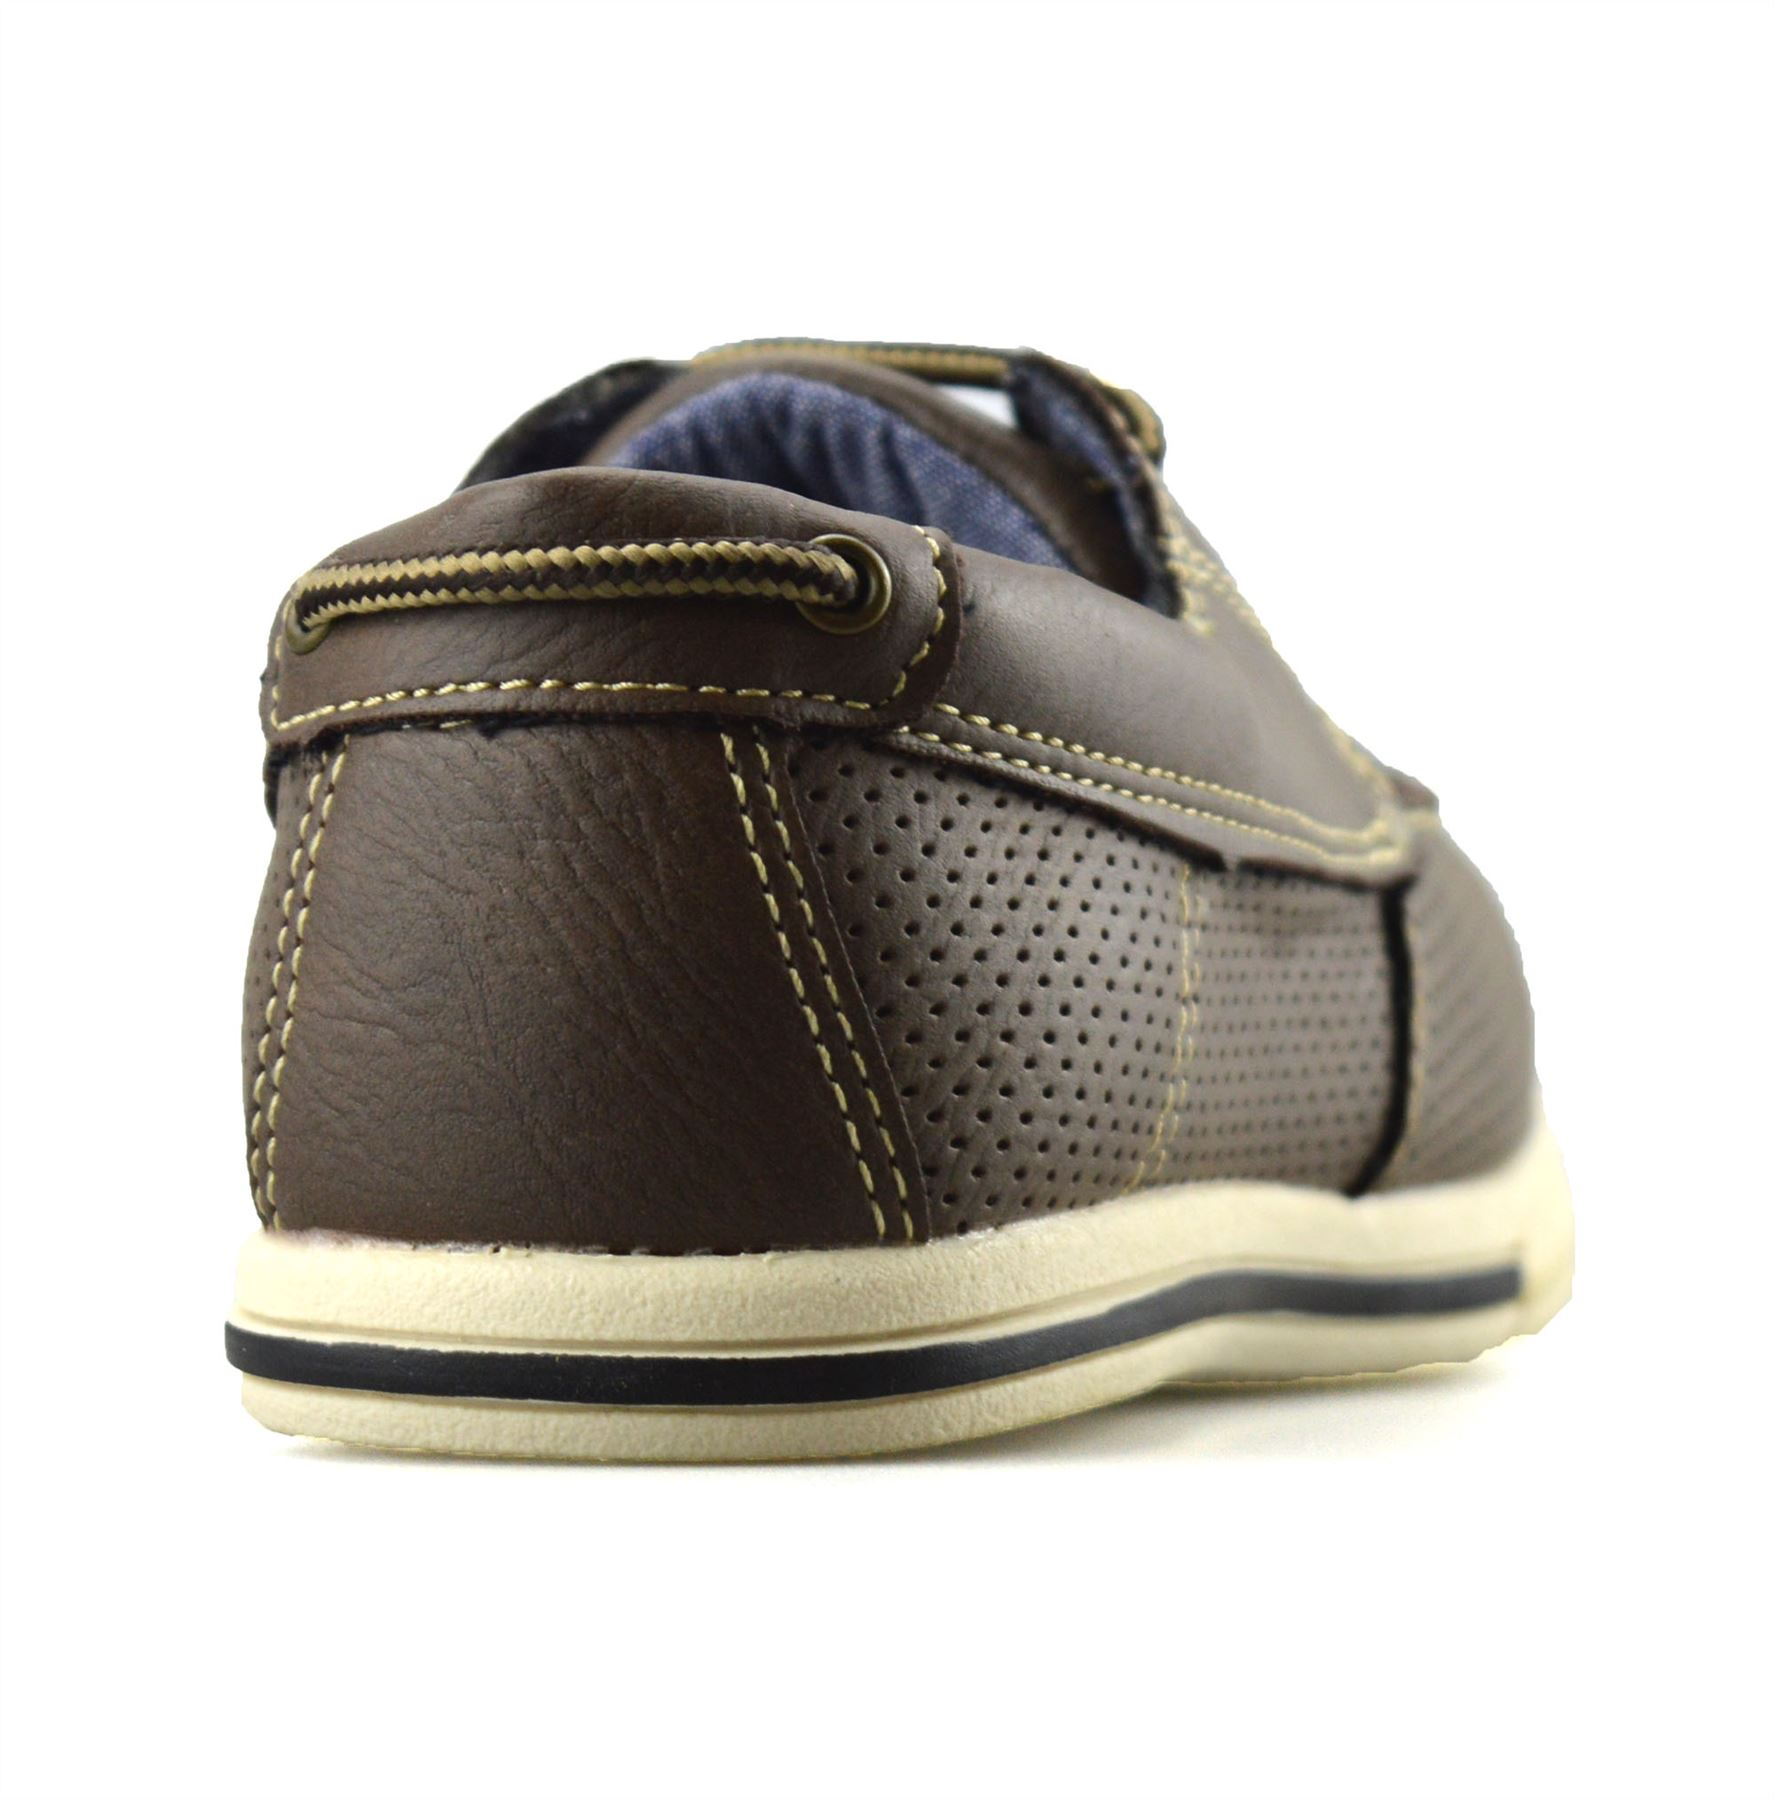 Boys-Kids-Casual-Summer-Lace-Up-Smart-Walking-School-Trainers-Boat-Shoes-Size thumbnail 9